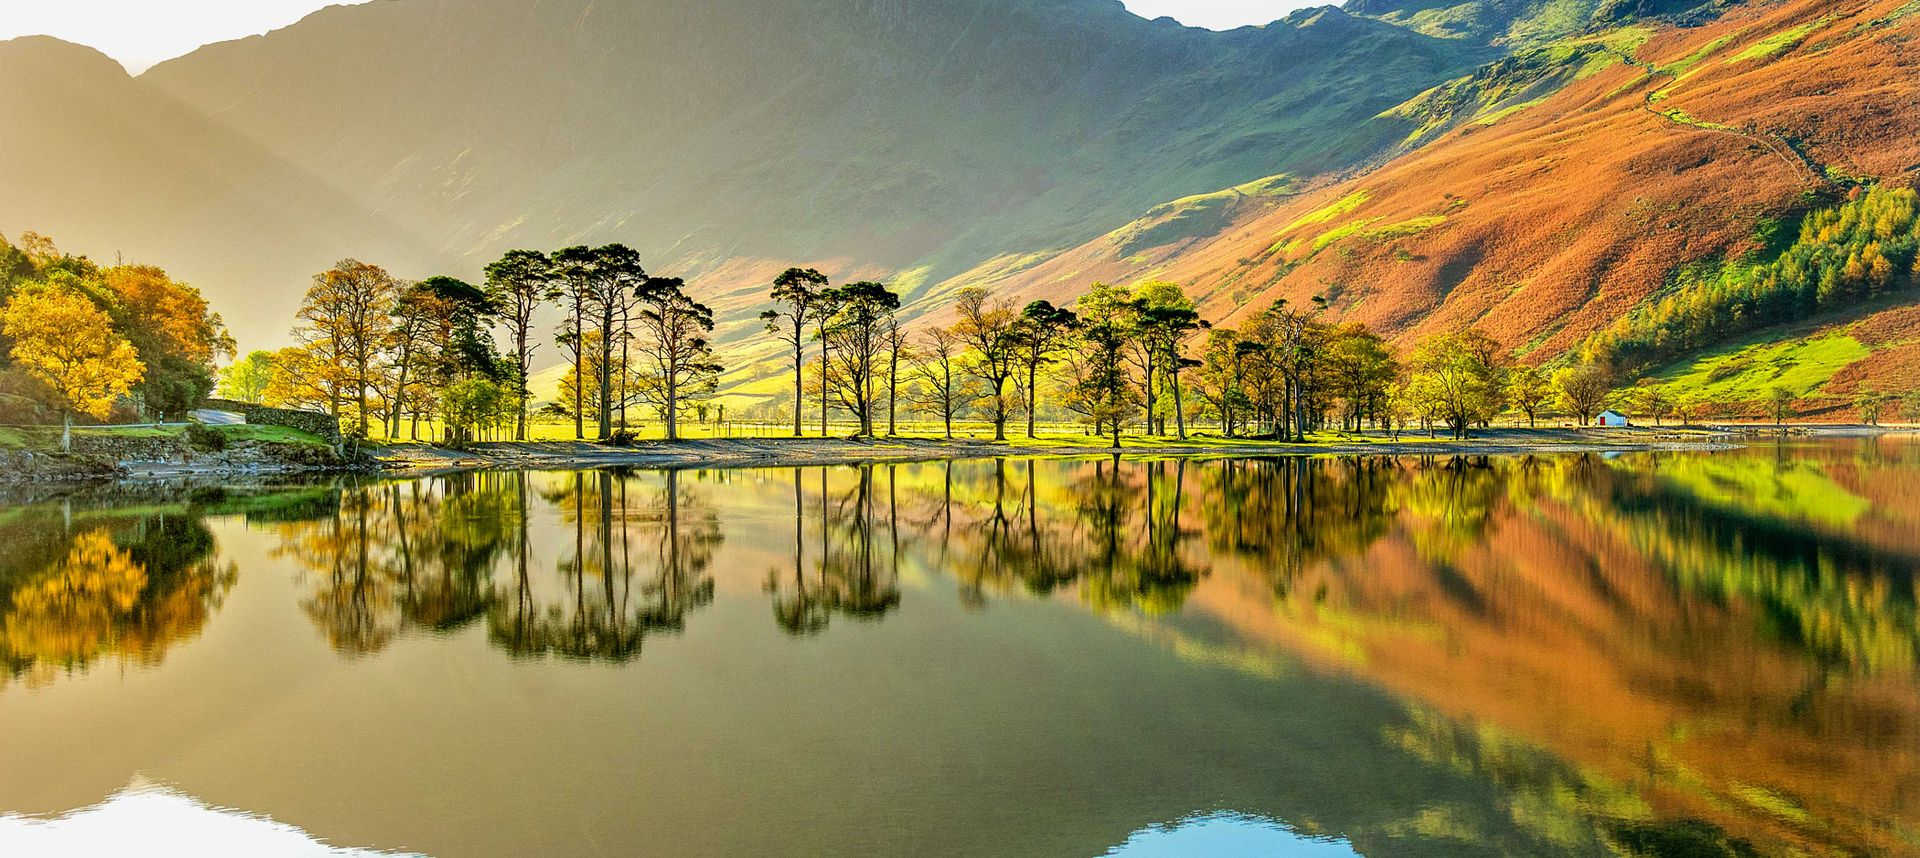 15 things you must do in the Lake District